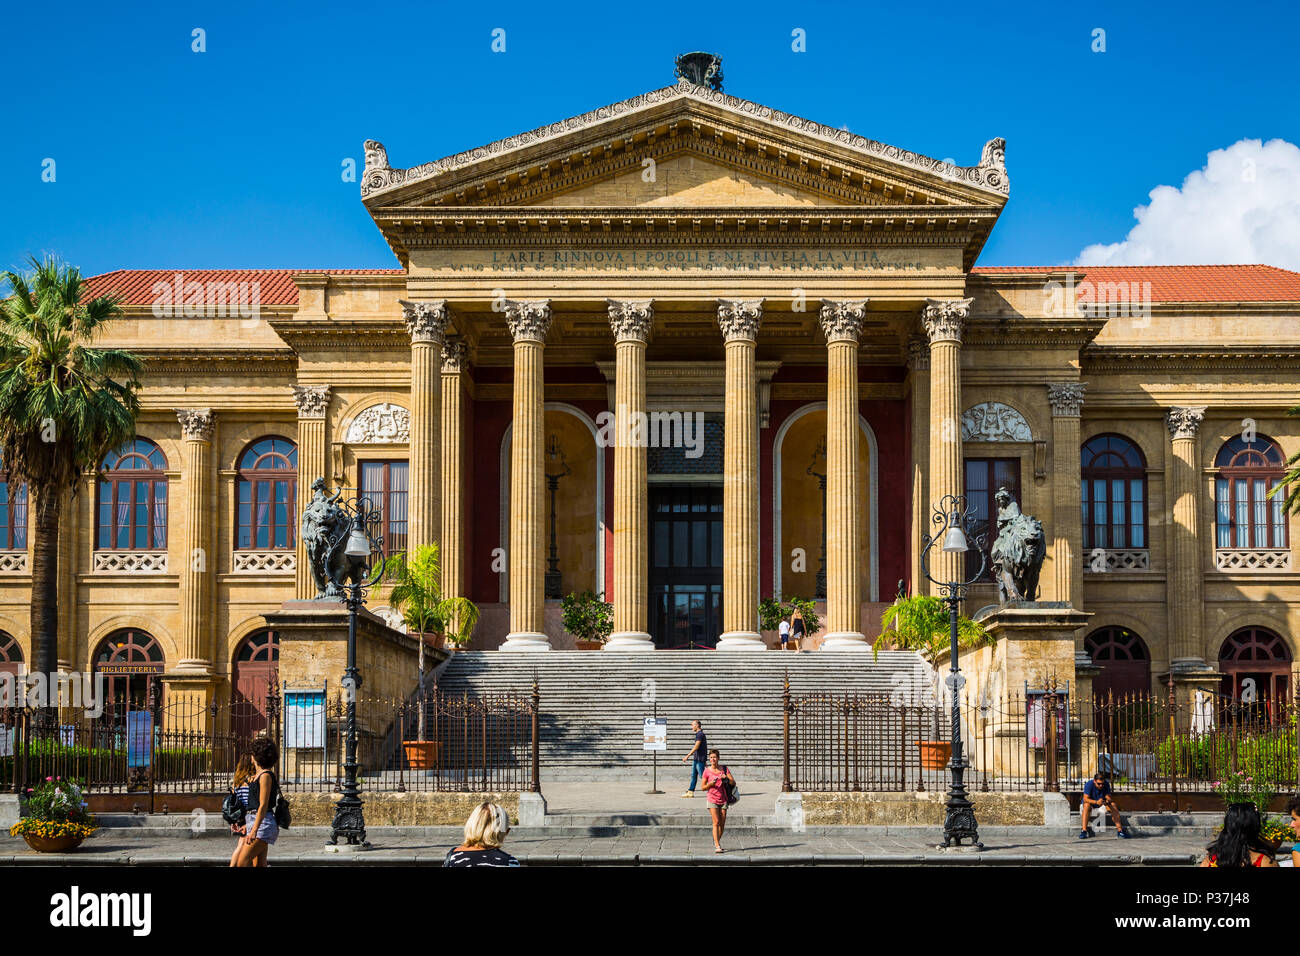 View of the Teatro Massimo in Palermo, Sicily, Italy - Stock Image